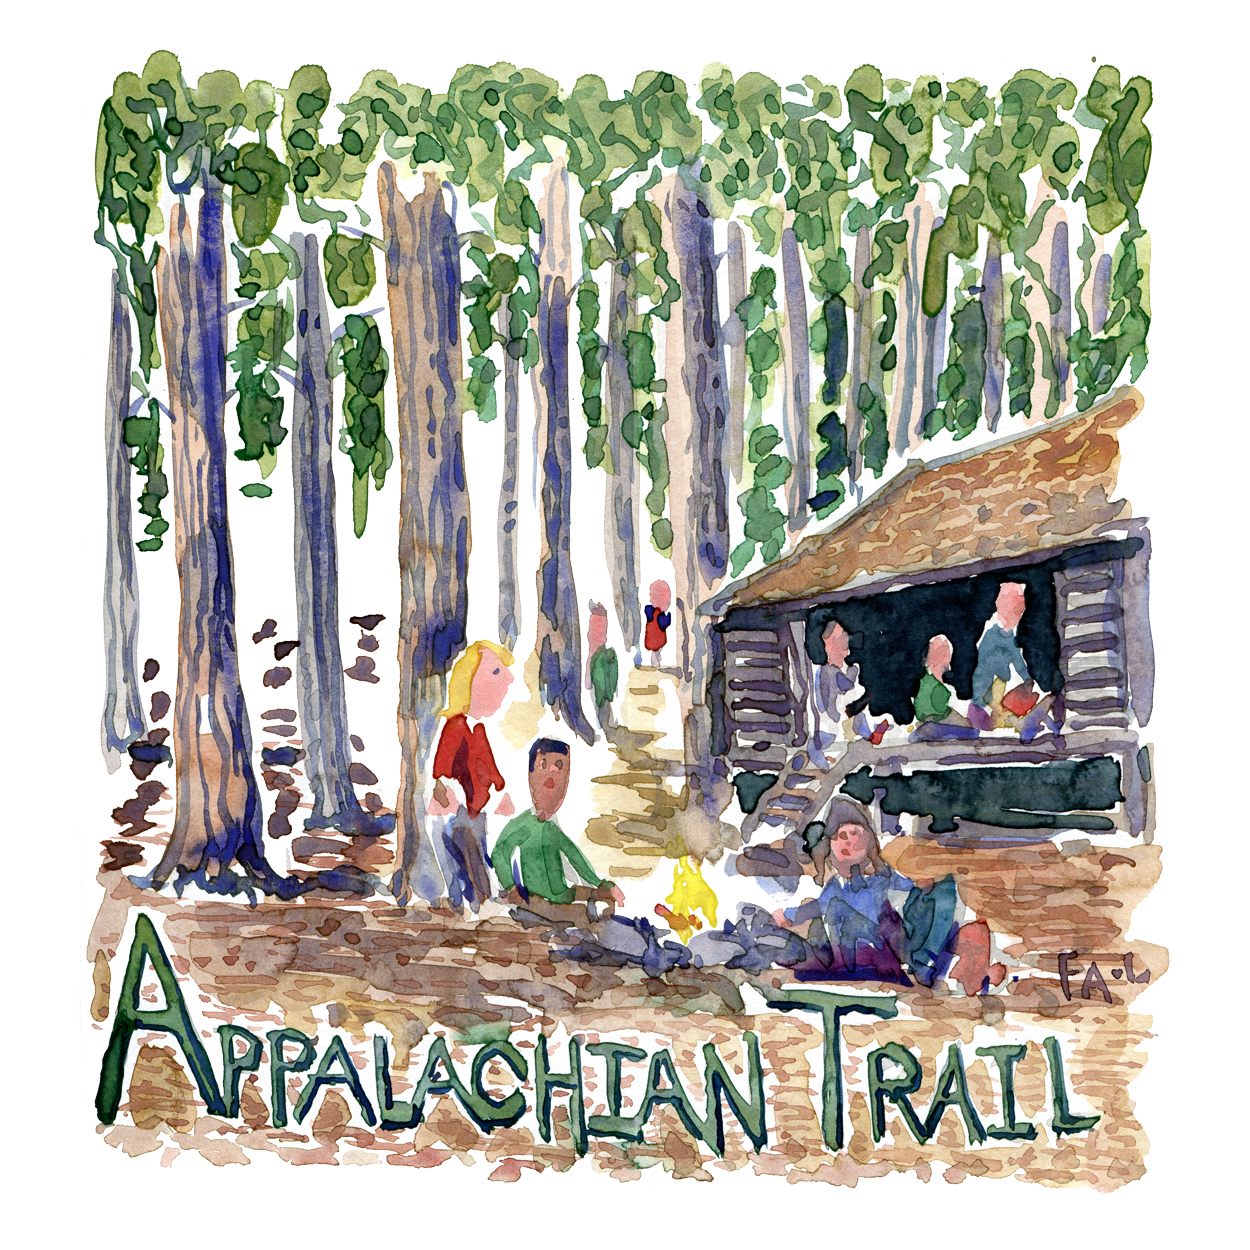 Hikers around a shelter in a forest with the text Appalachian trail in front, Watercolor illustration by Frits Ahlefeldt